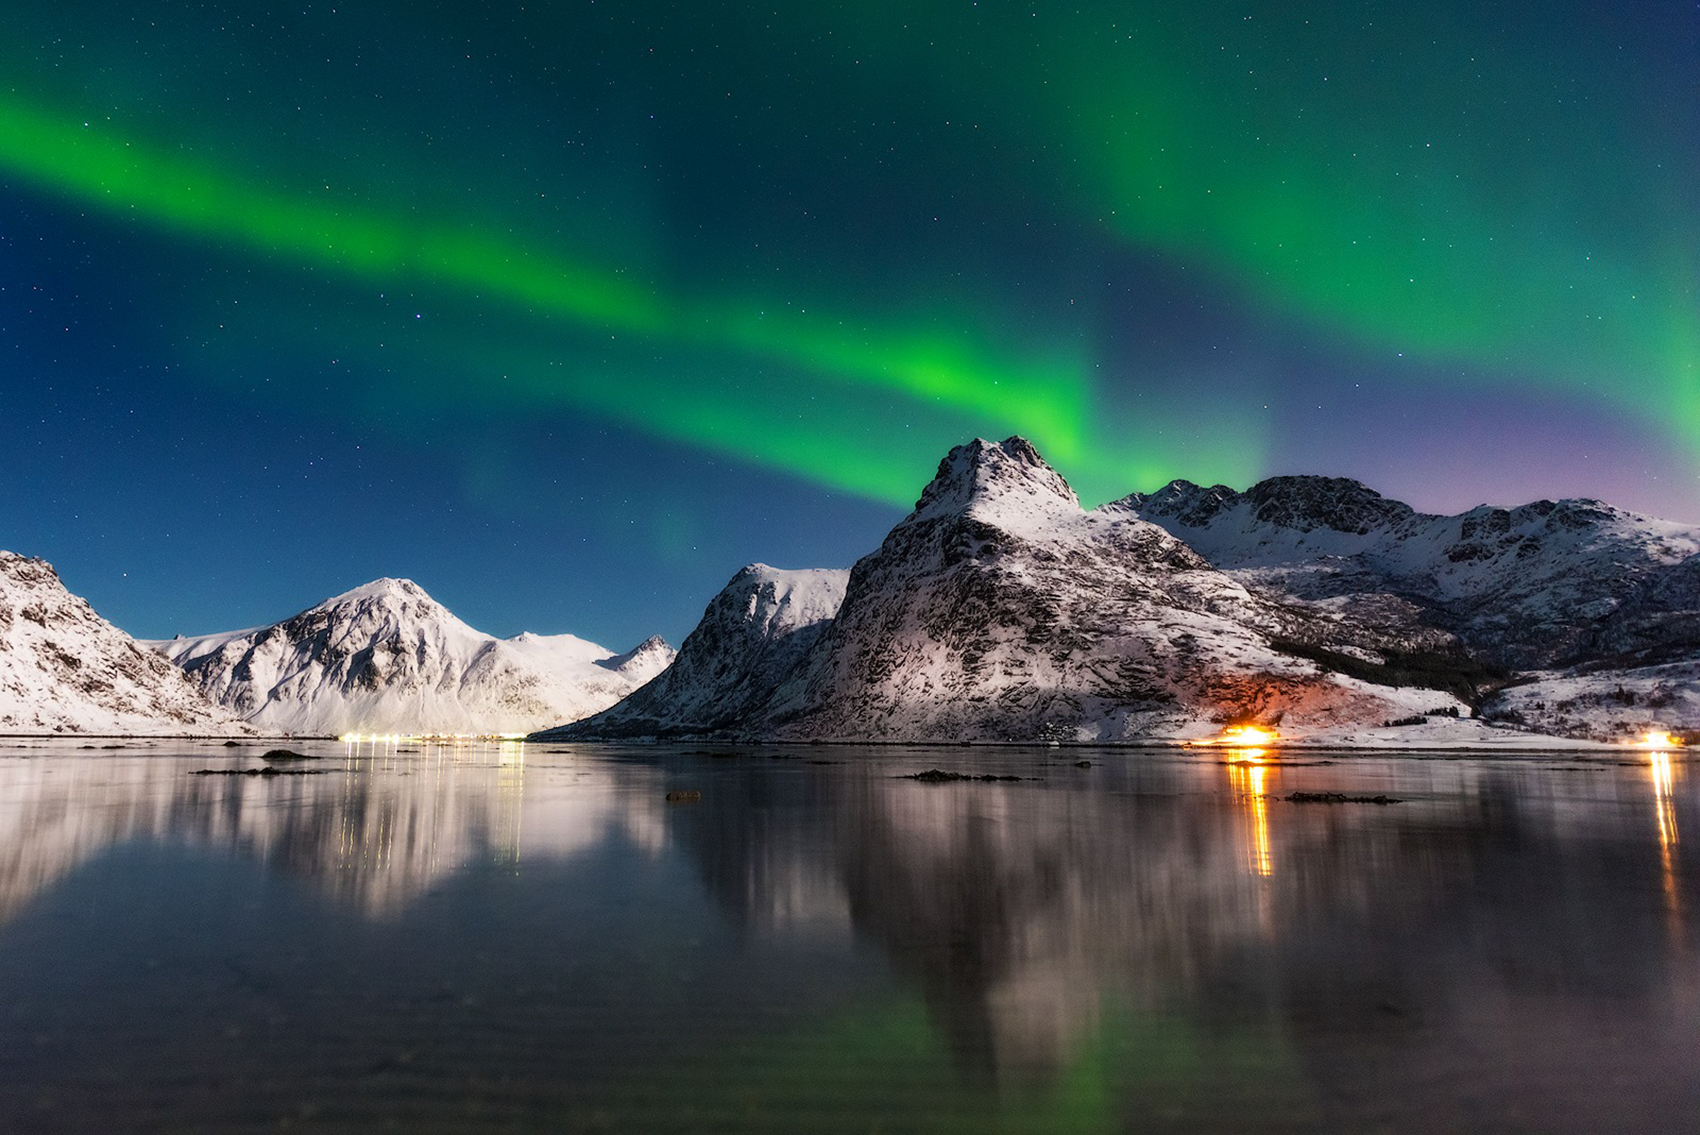 A small display of the northern lights over the Lofoten Islands of Norway during a full moon.